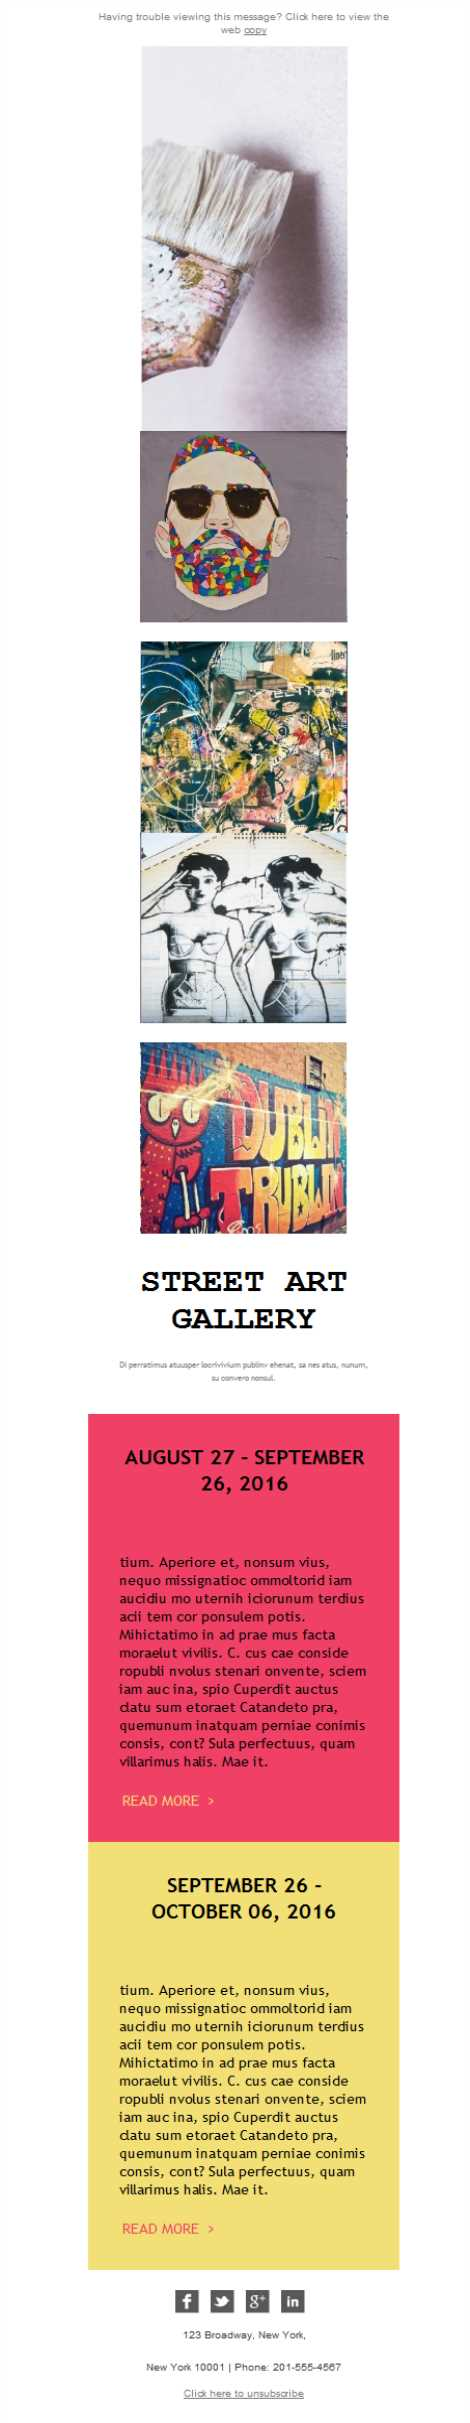 Templates Emailing Art Gallery Street Sarbacane